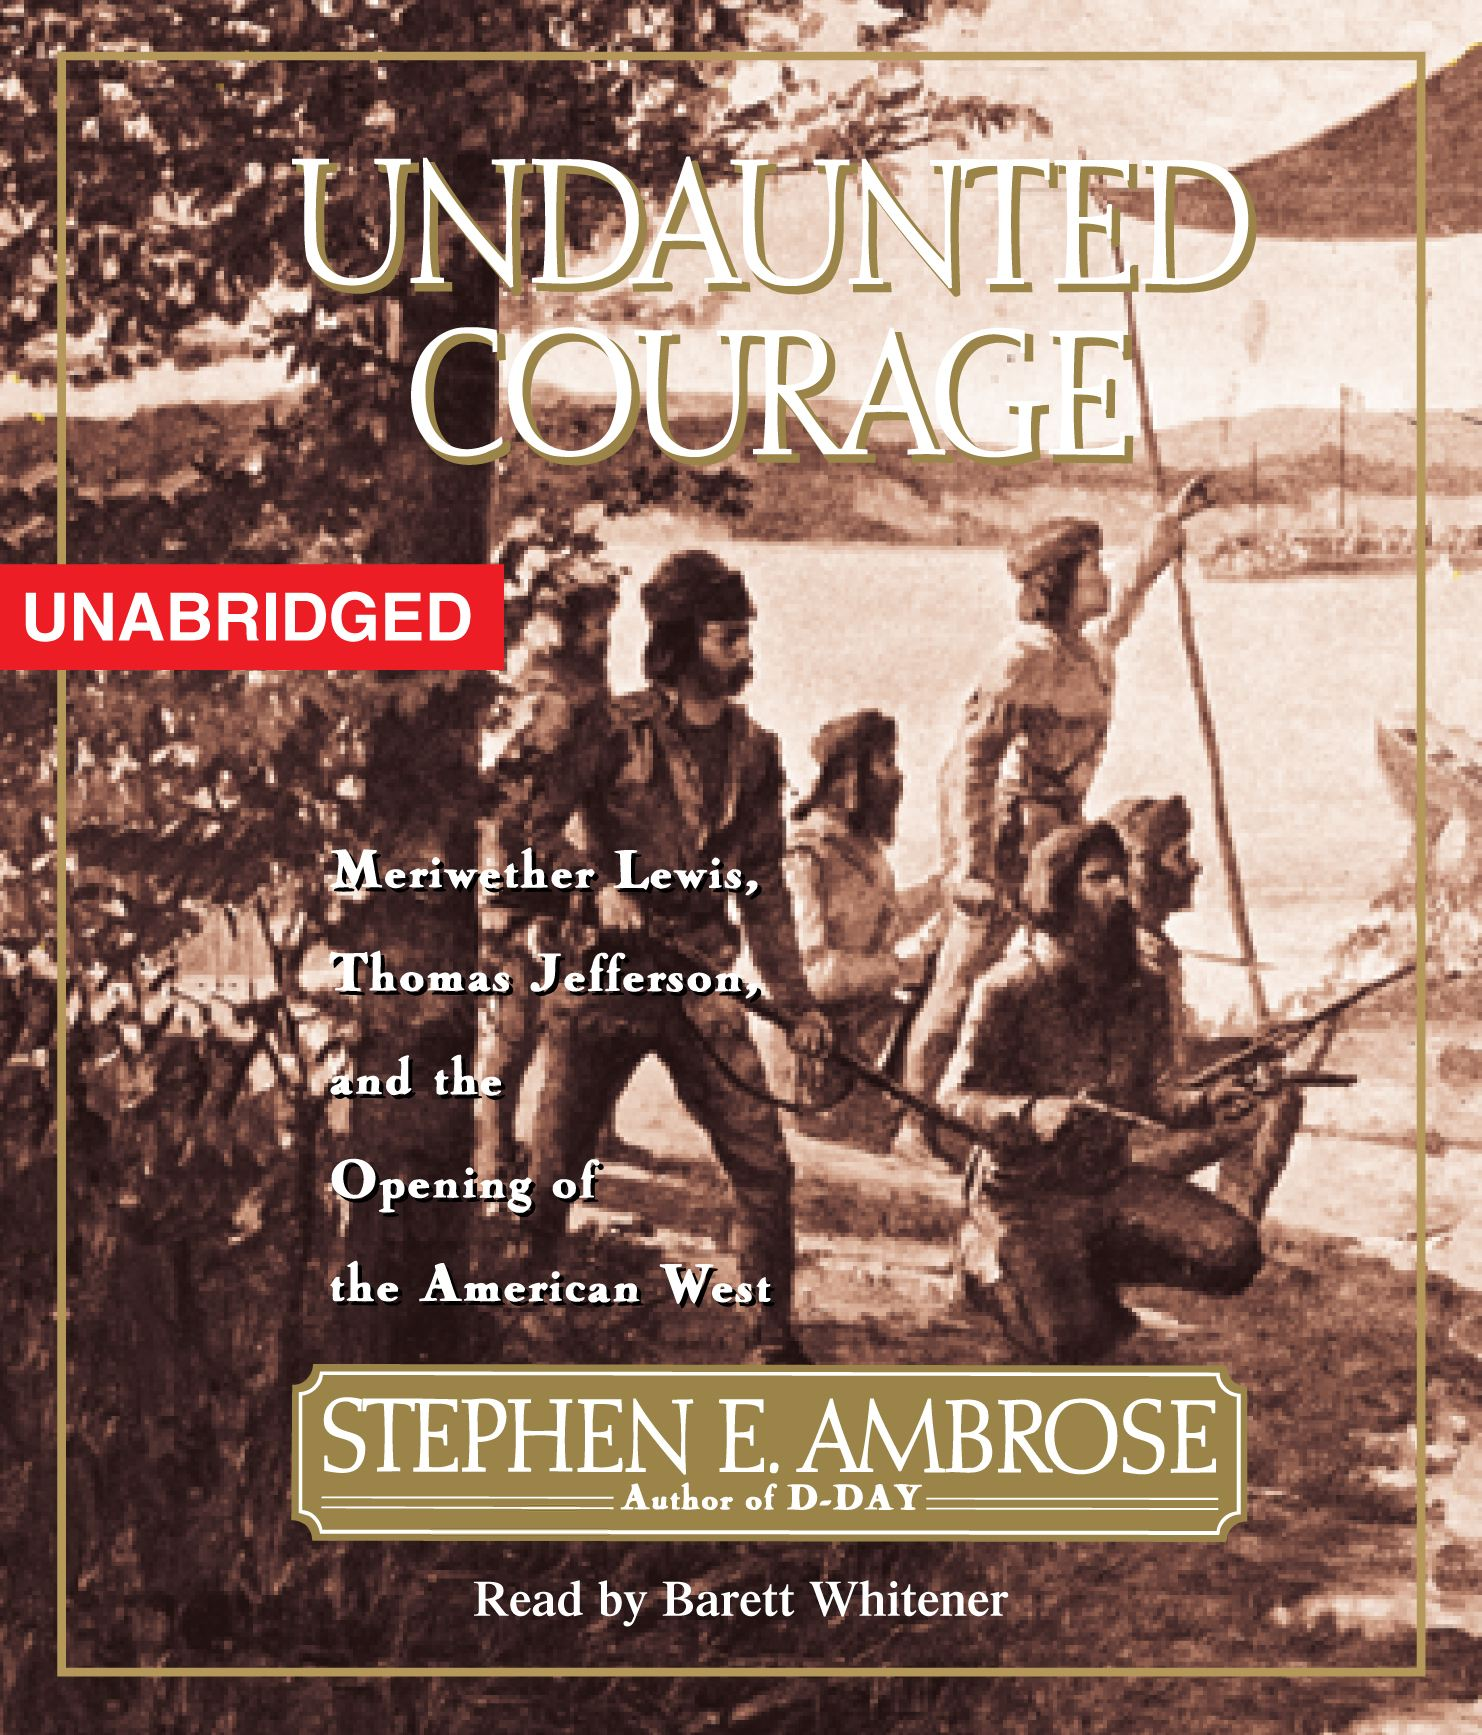 what is the thesis of undaunted courage Undaunted courage: meriwether lewis, thomas jefferson and the opening of the american west, by stephen eambrose, simon & schuster, new york, 1996, $2750 no disrespect to william clark (a.